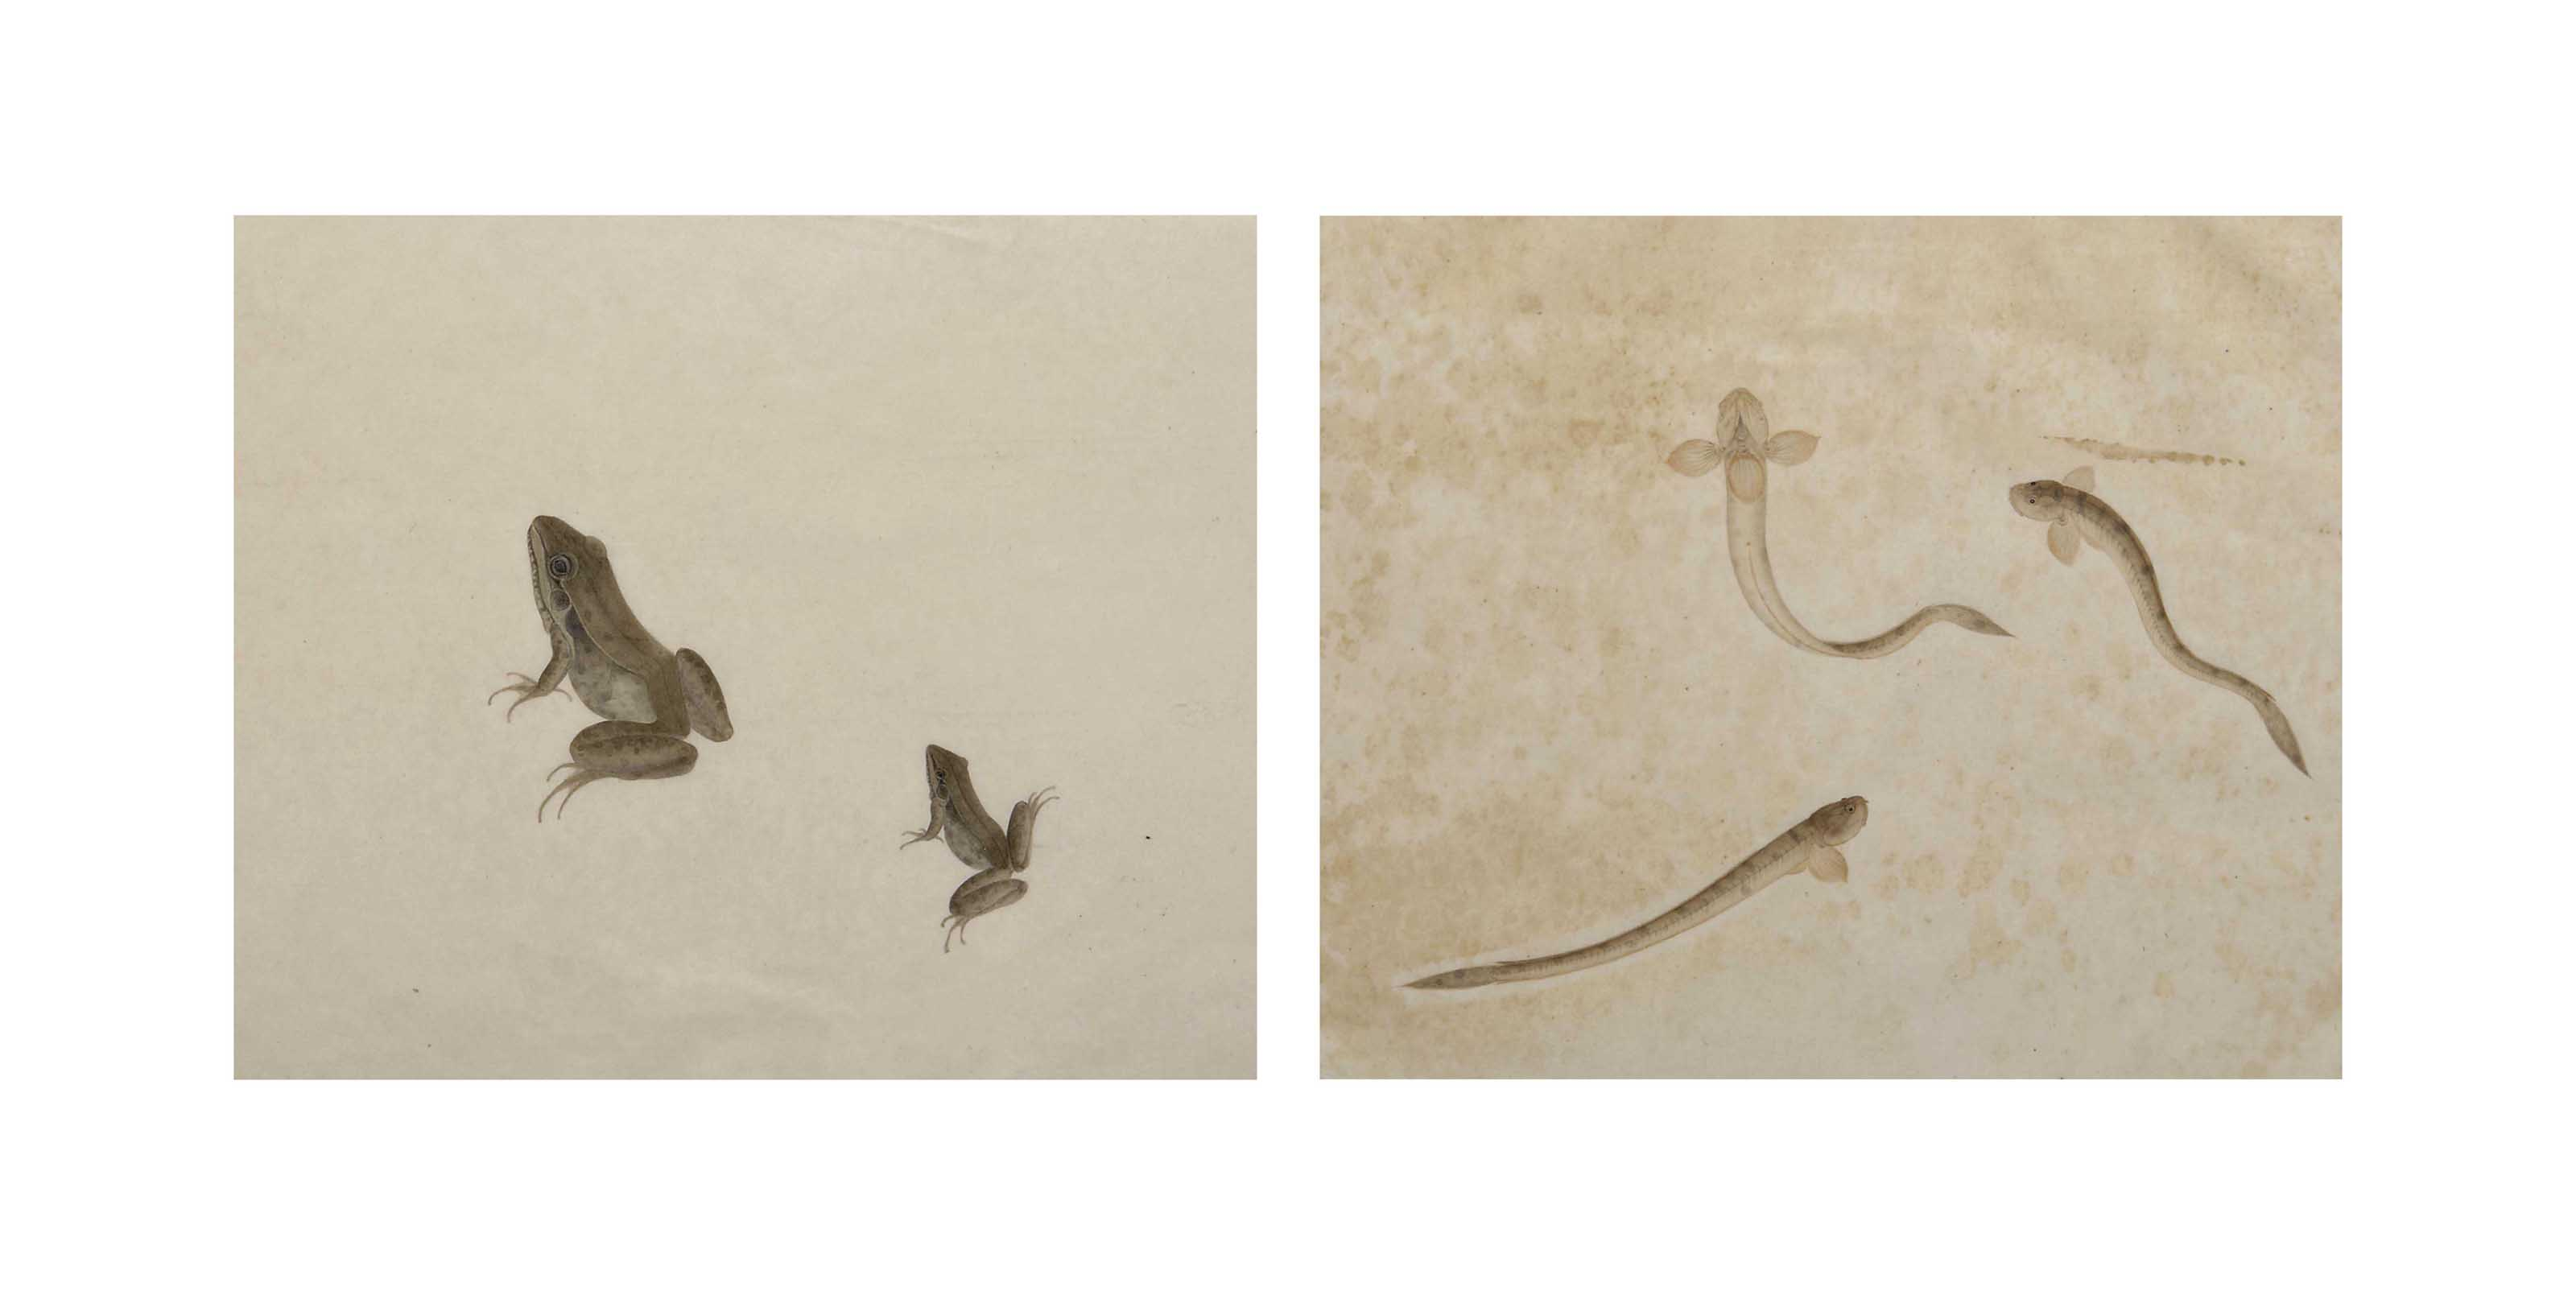 TWO STUDIES OF INDIAN FAUNA: A